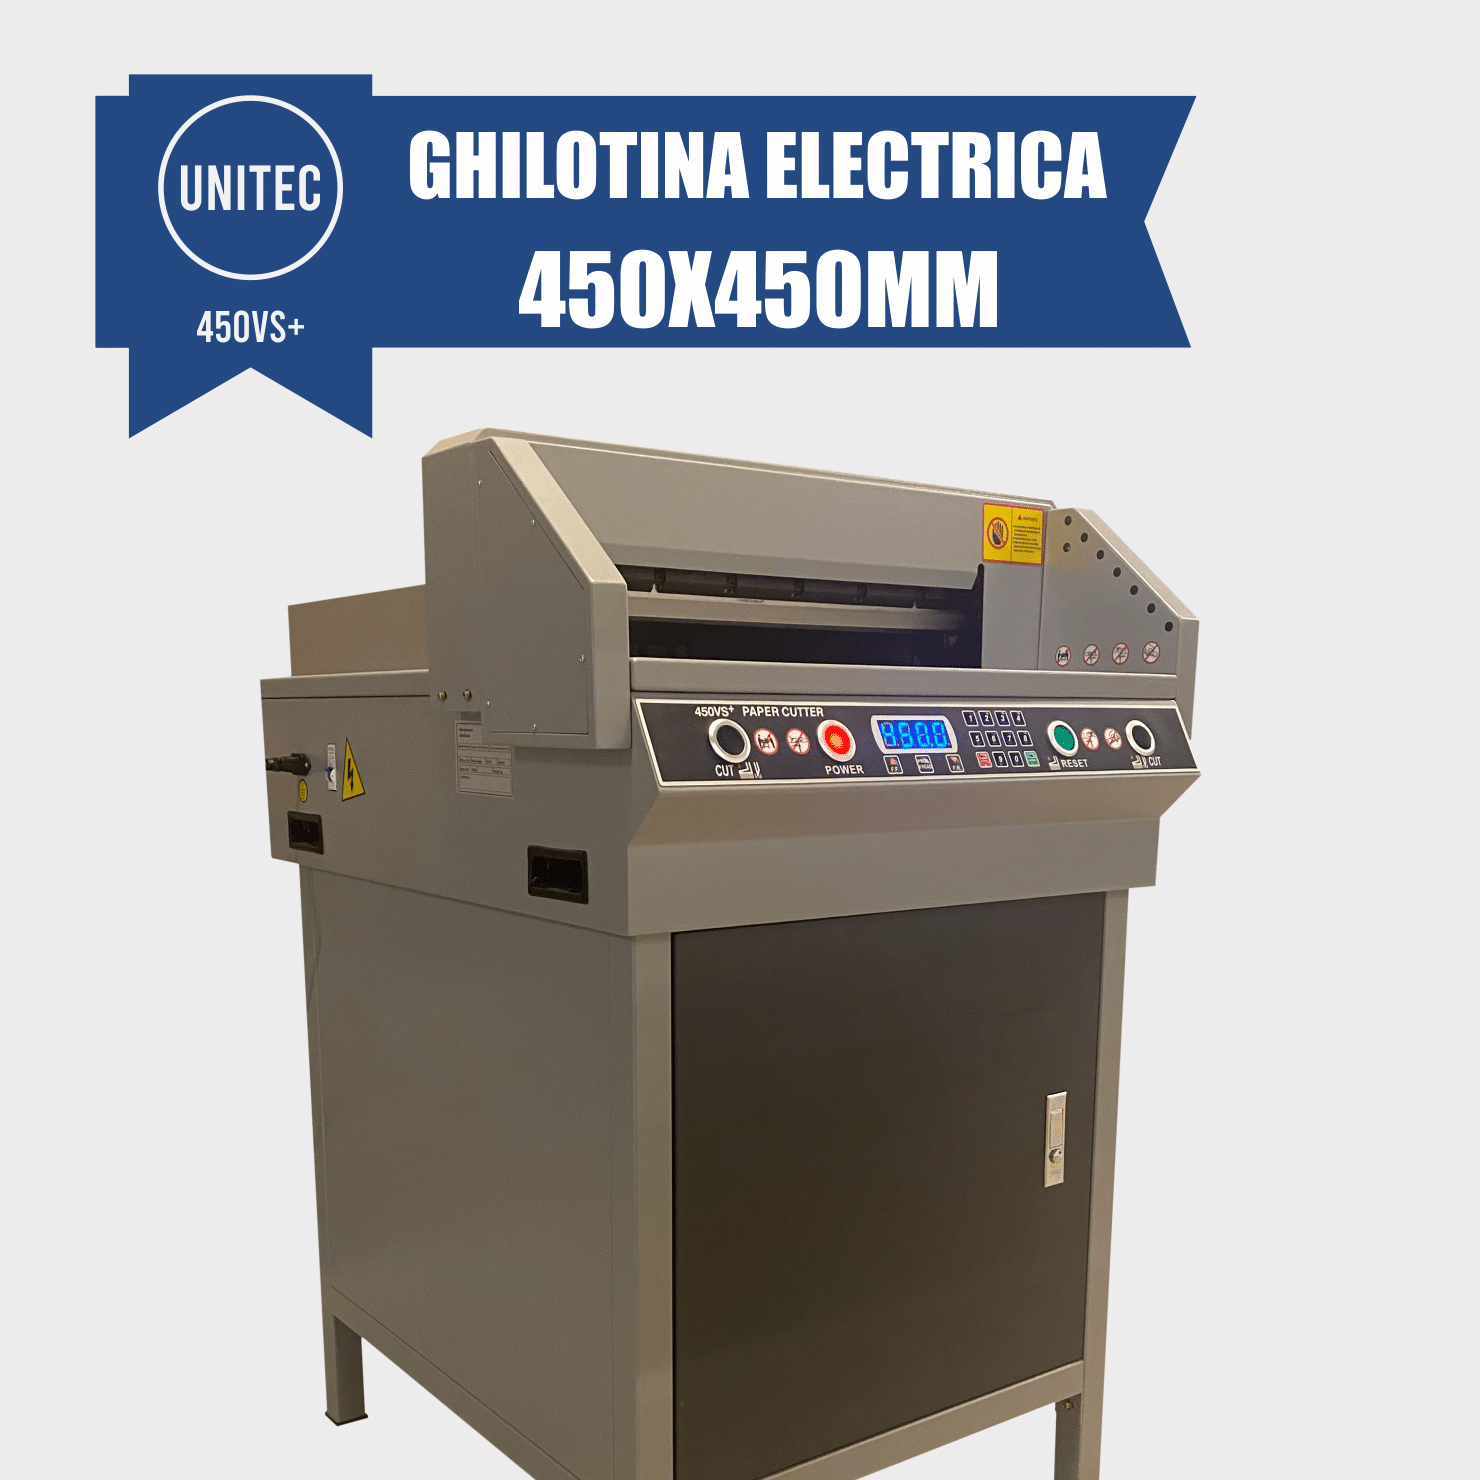 ghilotina electrica 450vs+